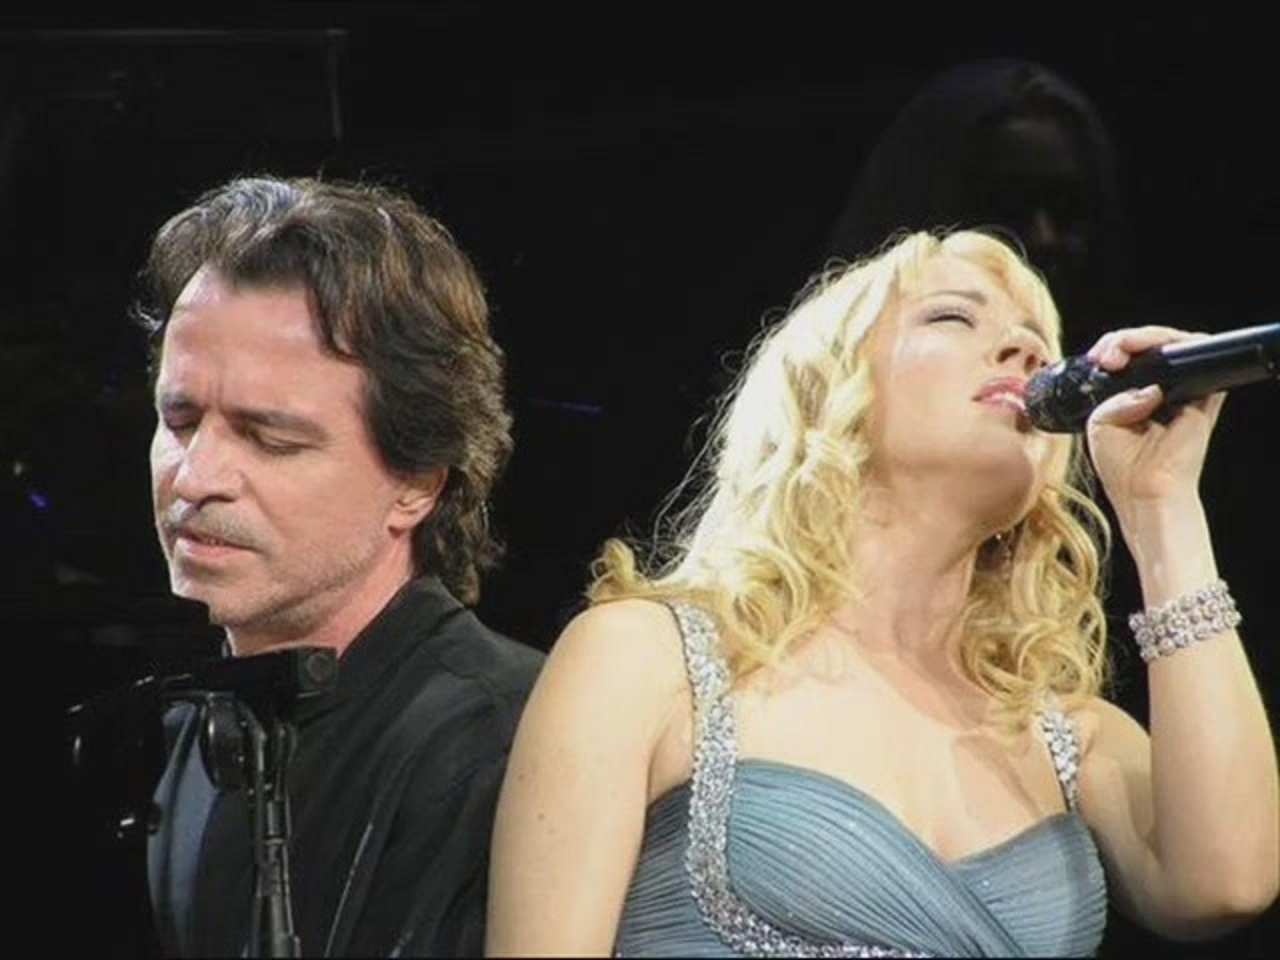 http://s5.picofile.com/file/8103957384/YouTube_Yanni_Voices_by_Renata_Vieira_02_01_23_.jpg